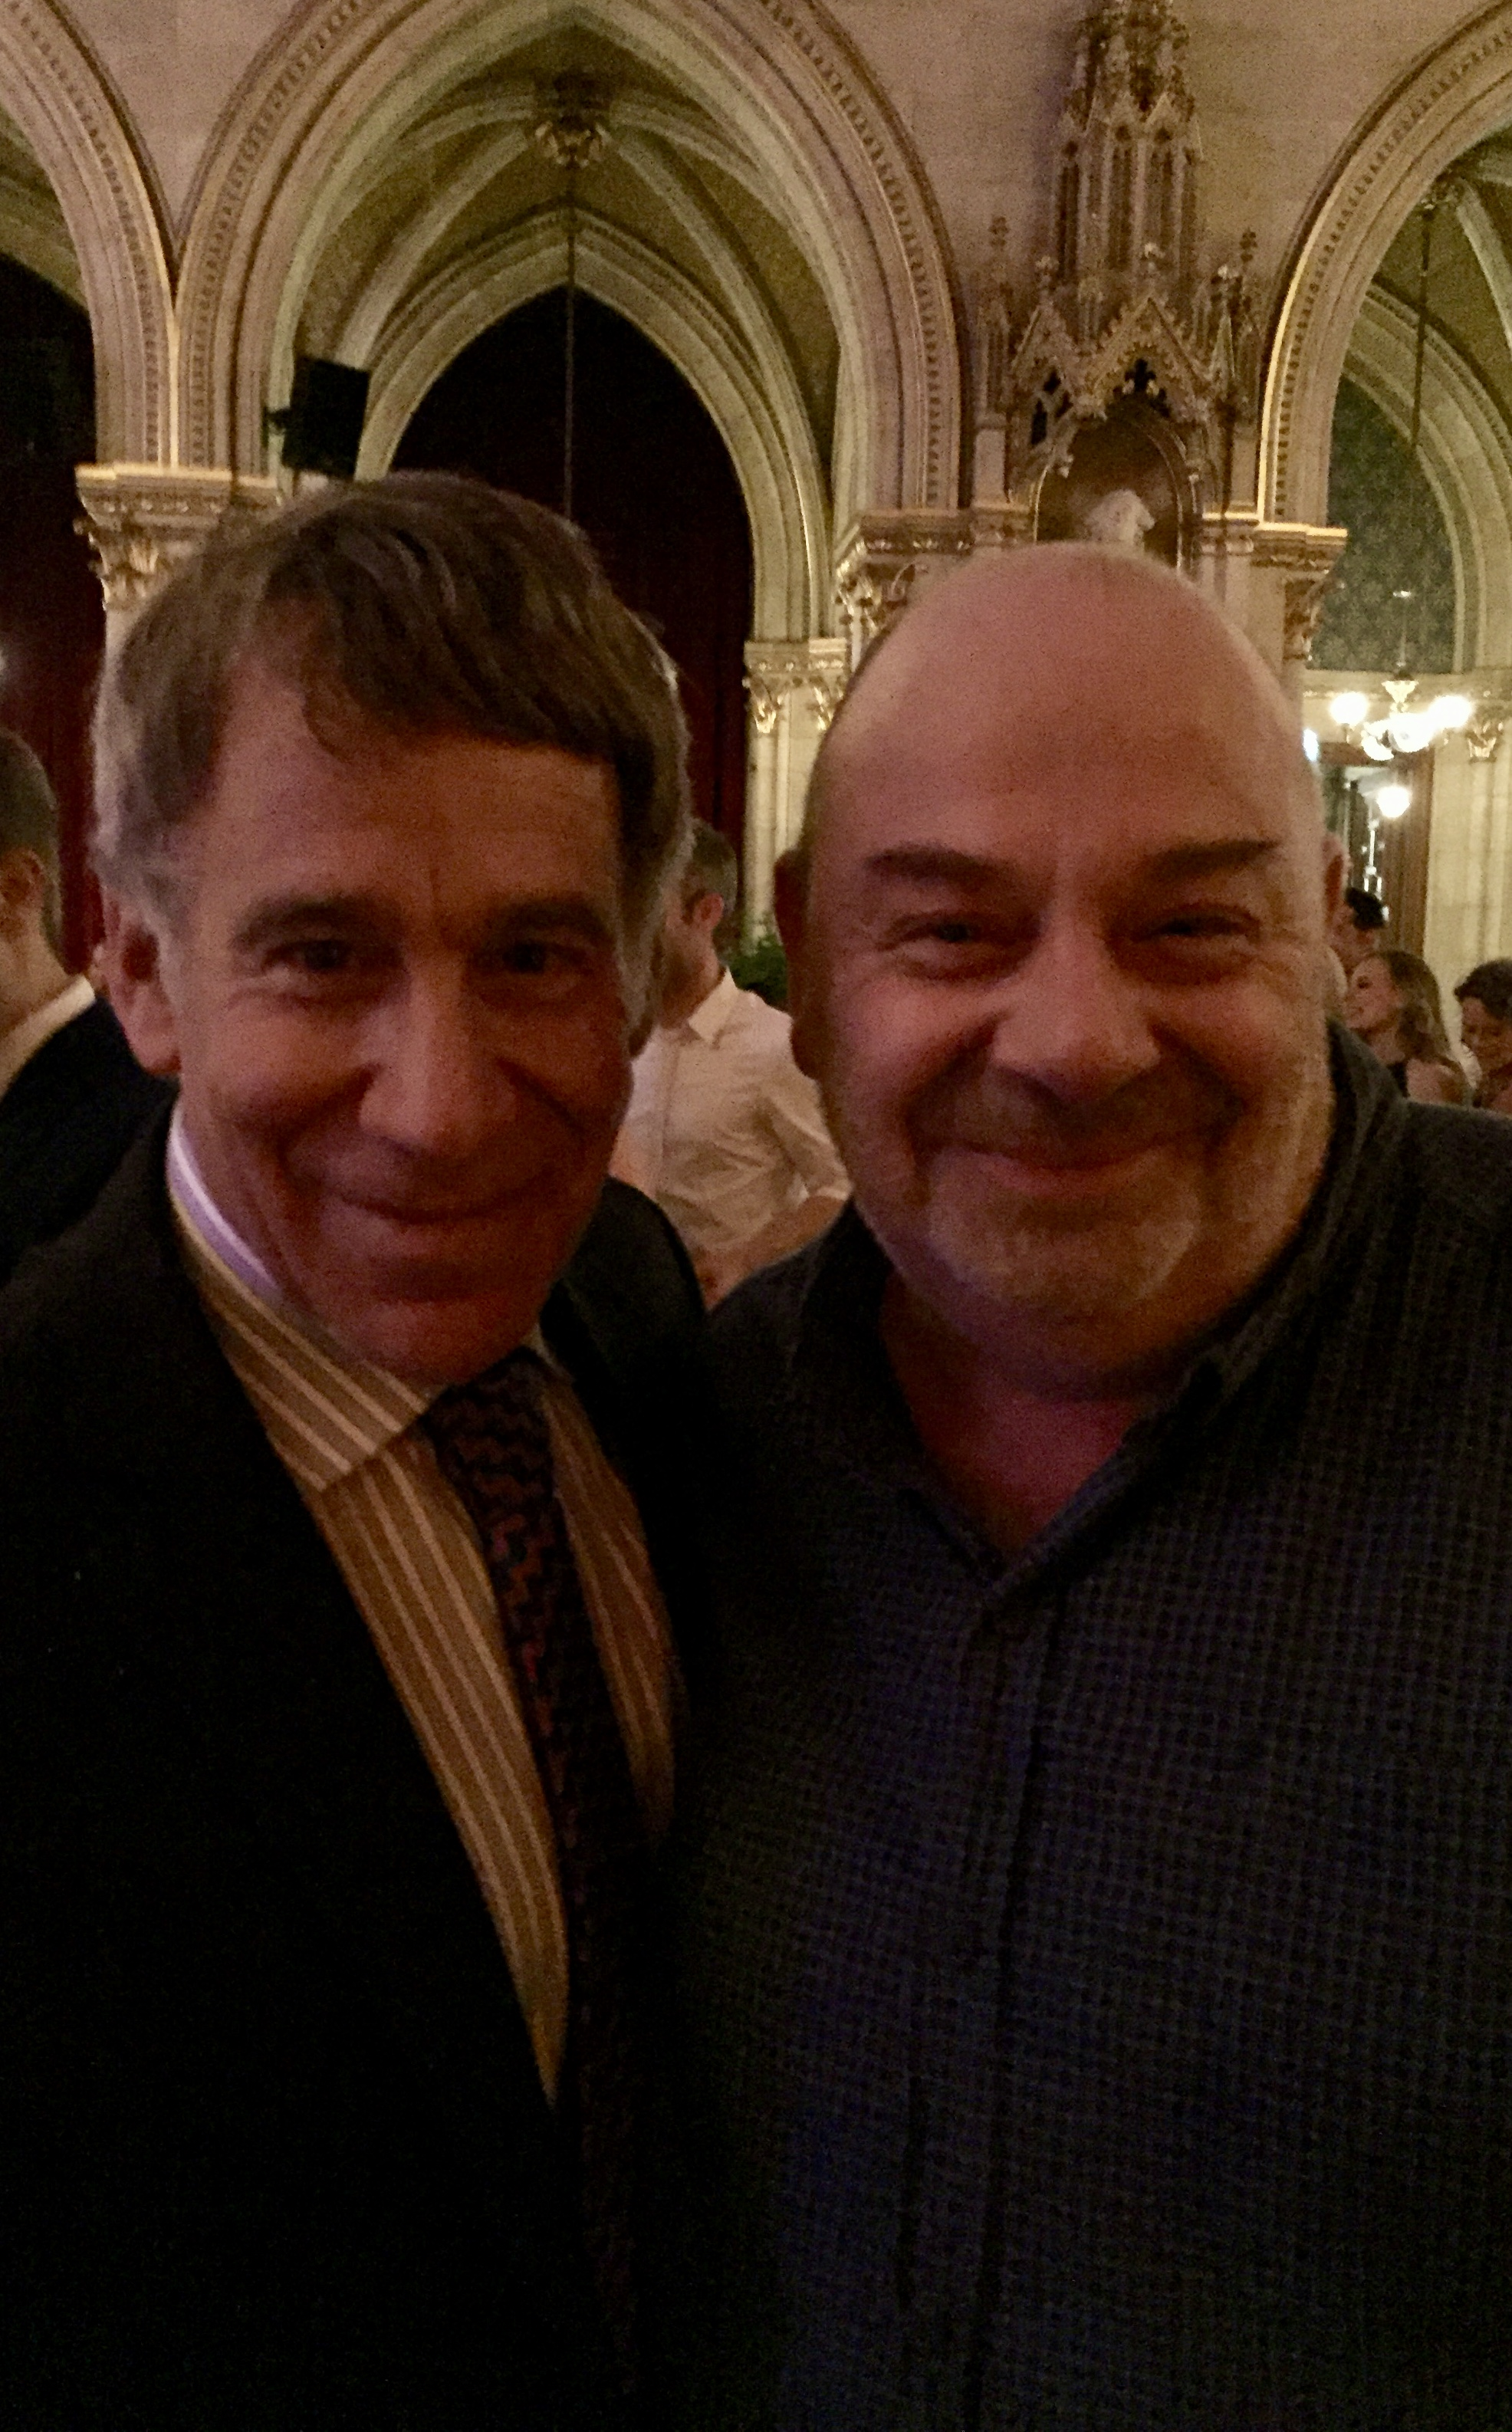 With Stephen Schwartz, Vienna 2016